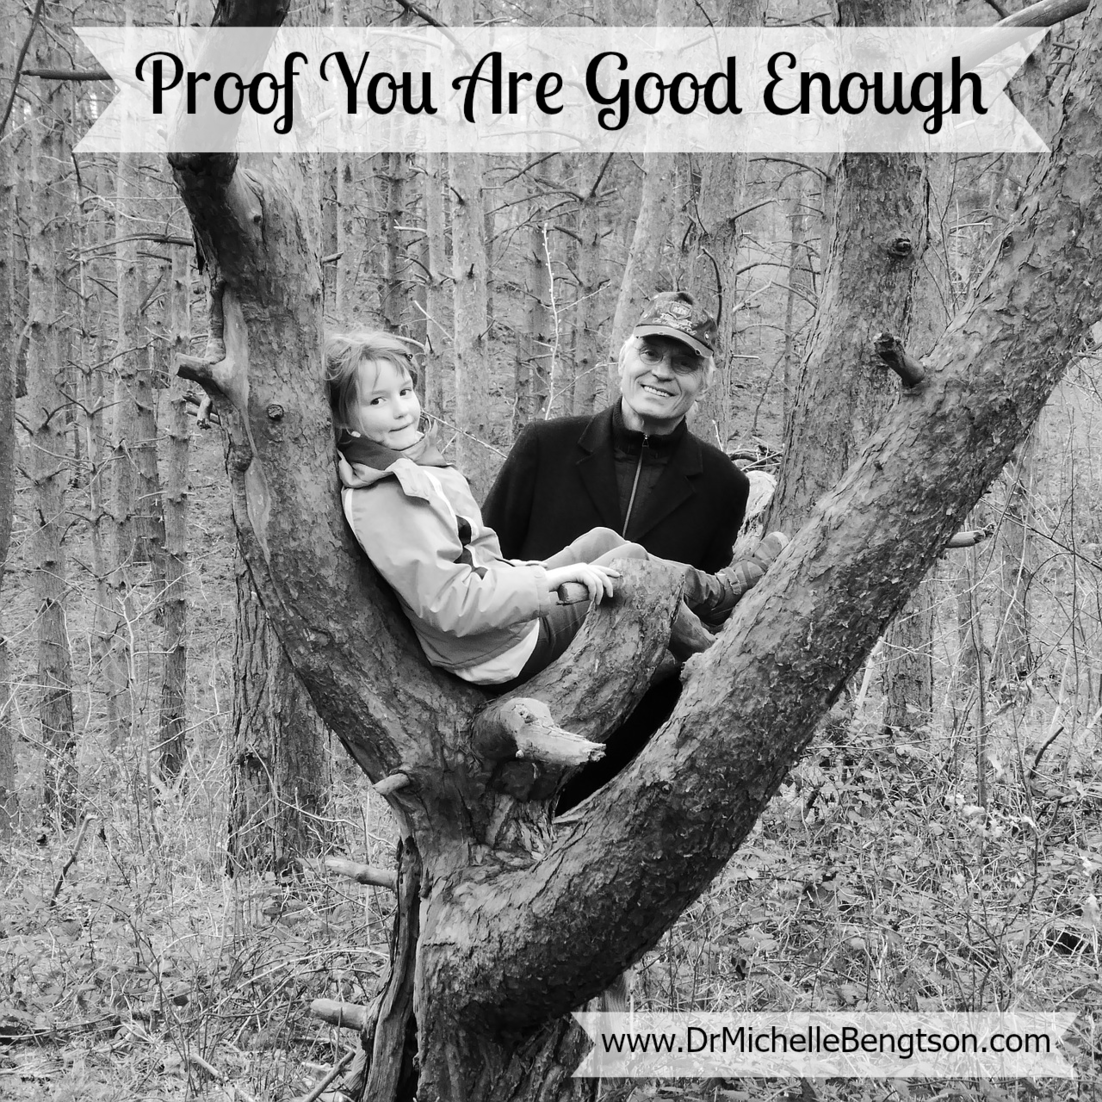 Proof You Are Good Enough